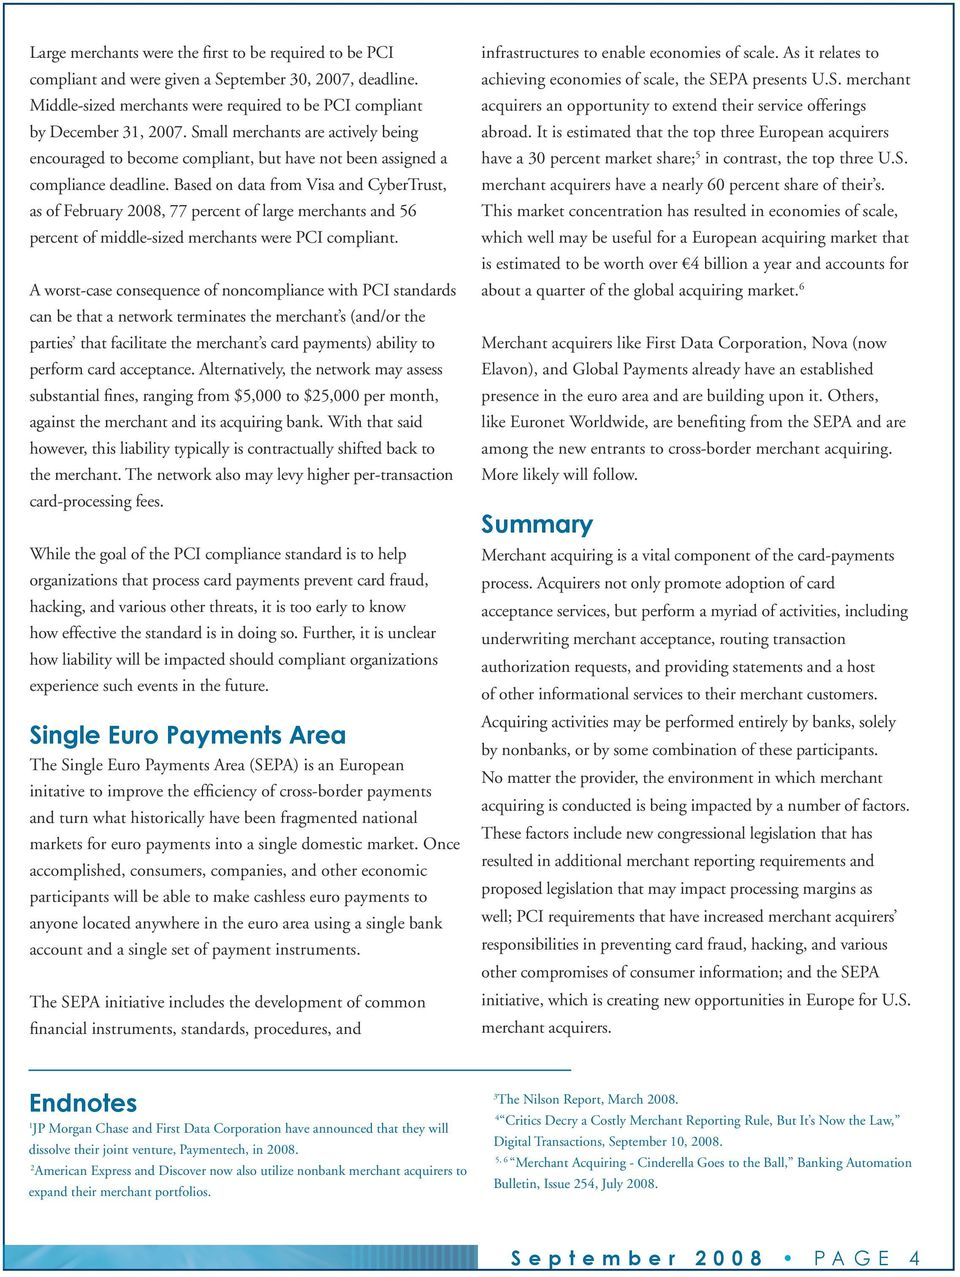 Based on data from Visa and CyberTrust, as of February 2008, 77 percent of large merchants and 56 percent of middle-sized merchants were PCI compliant.